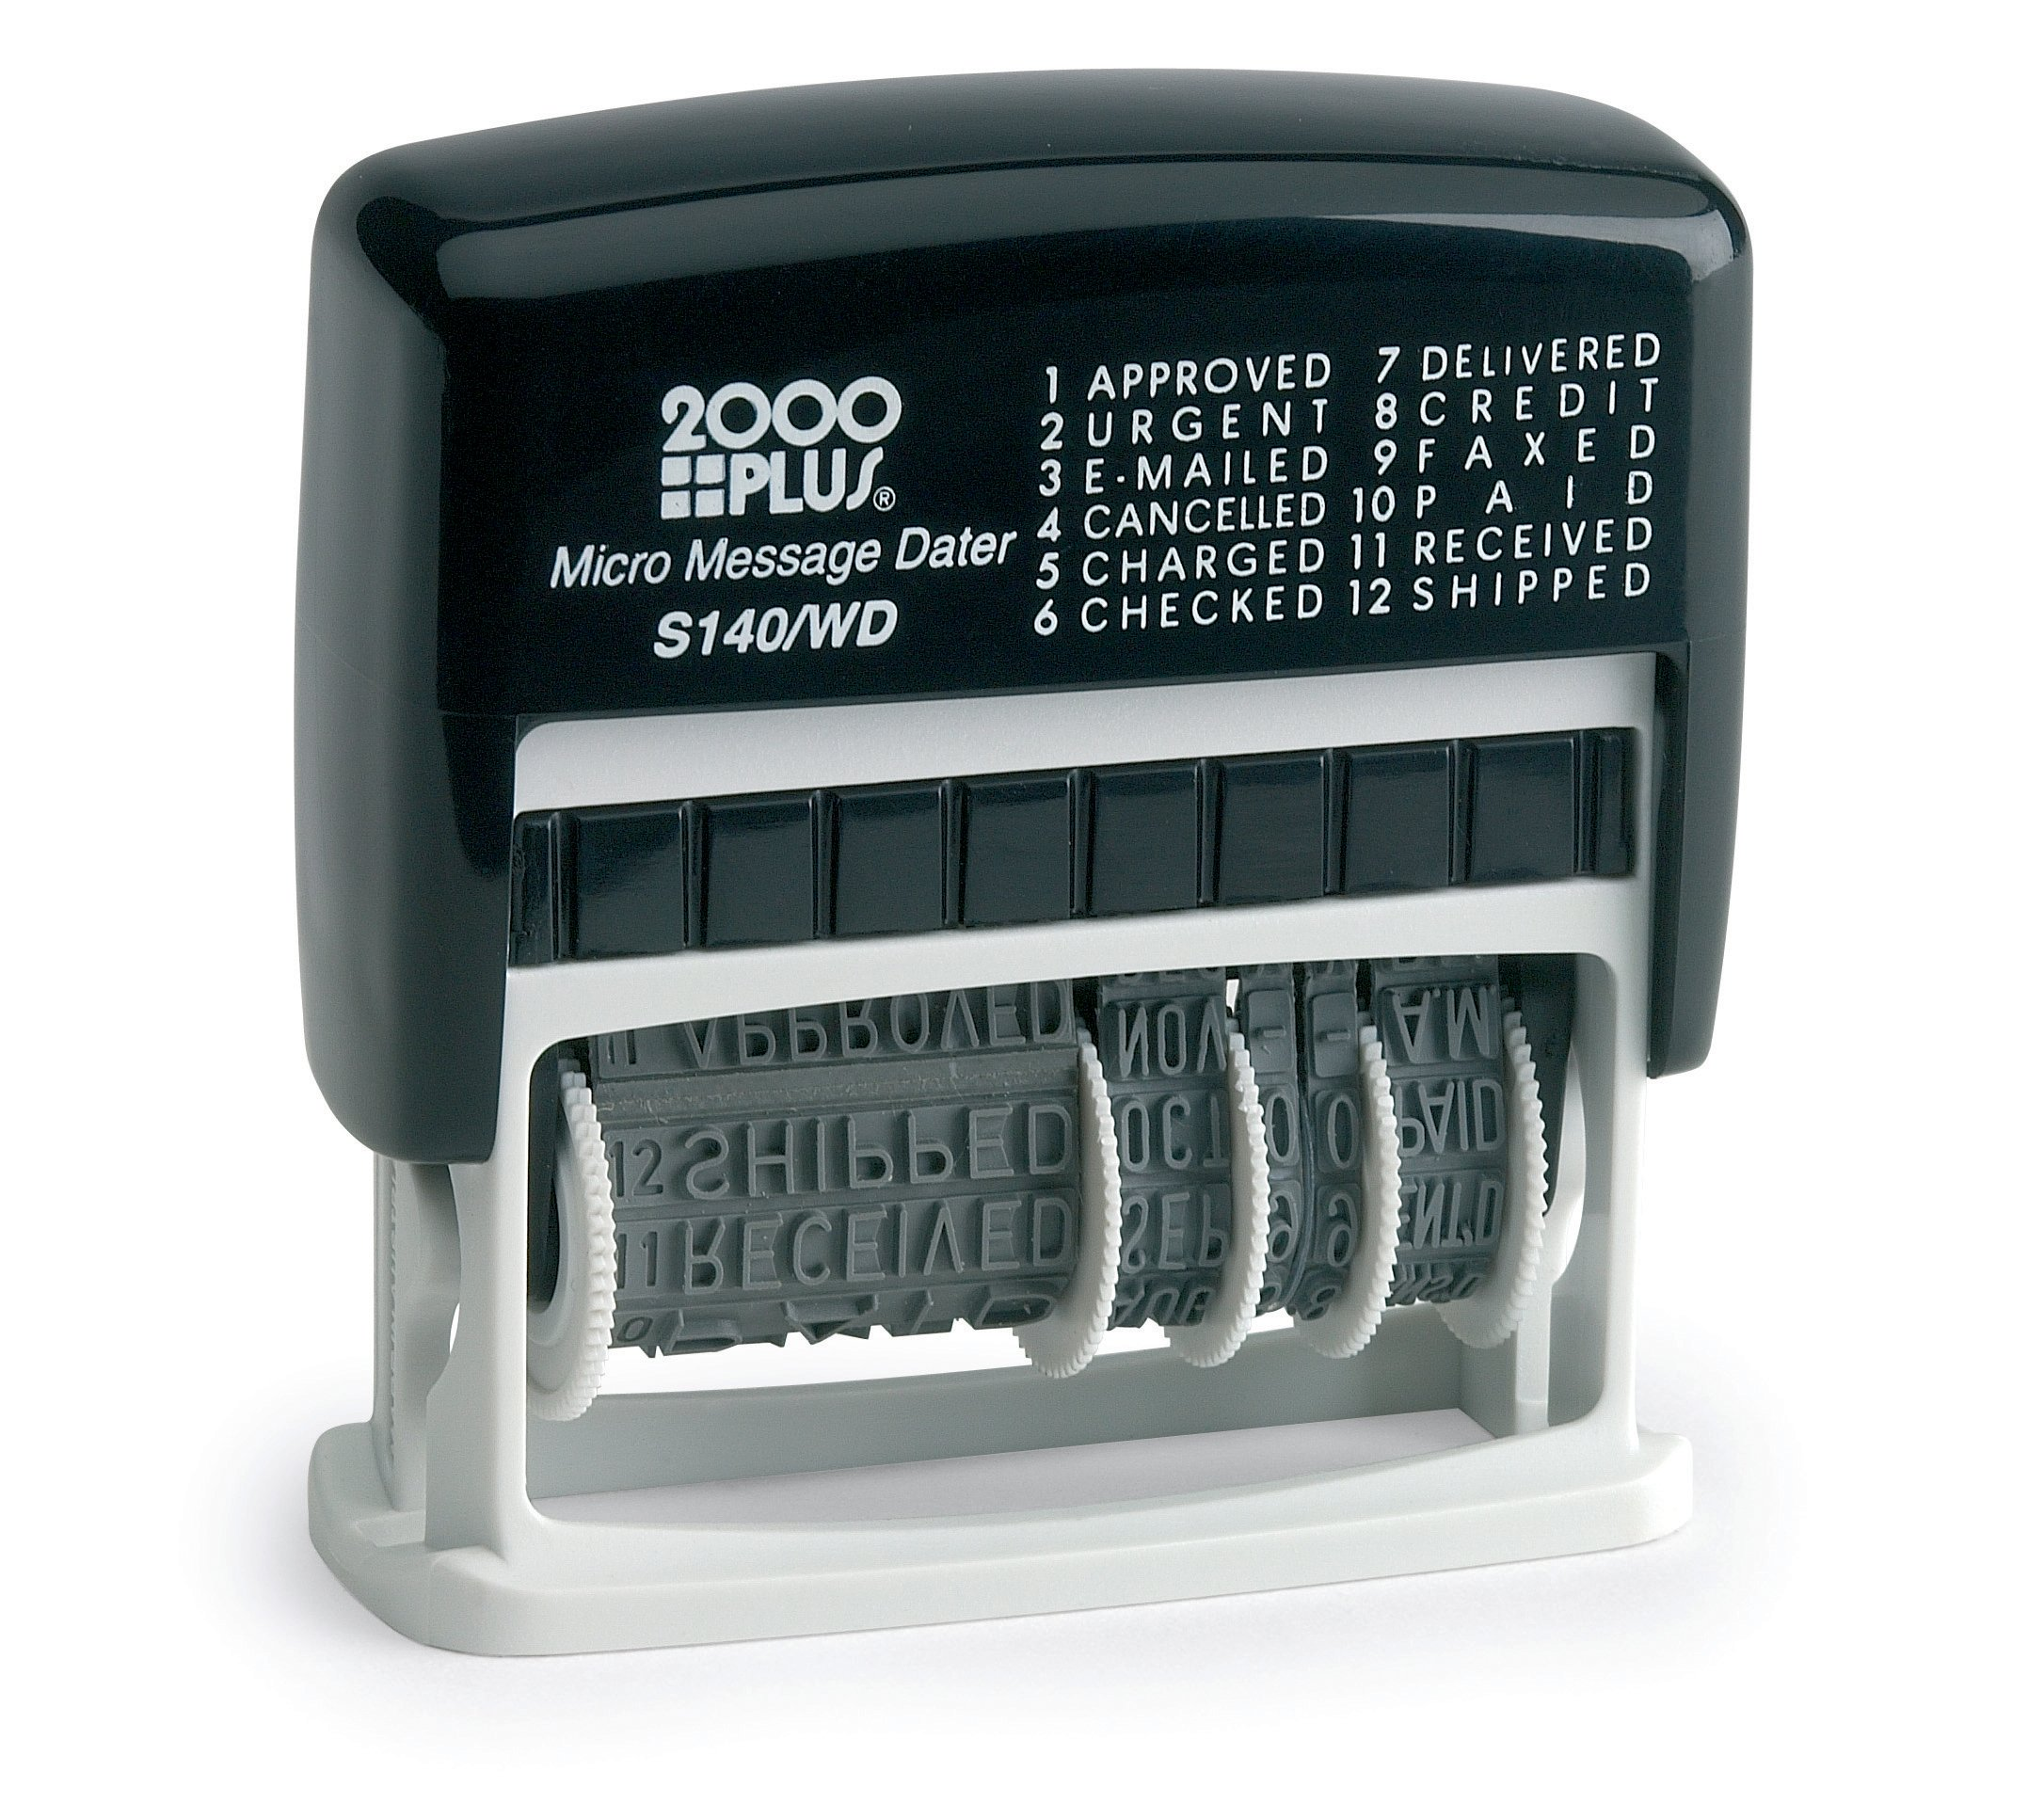 2000 PLUS 12-in-1 Self-Inking Date and Phrase Stamp, Black Ink (011227)